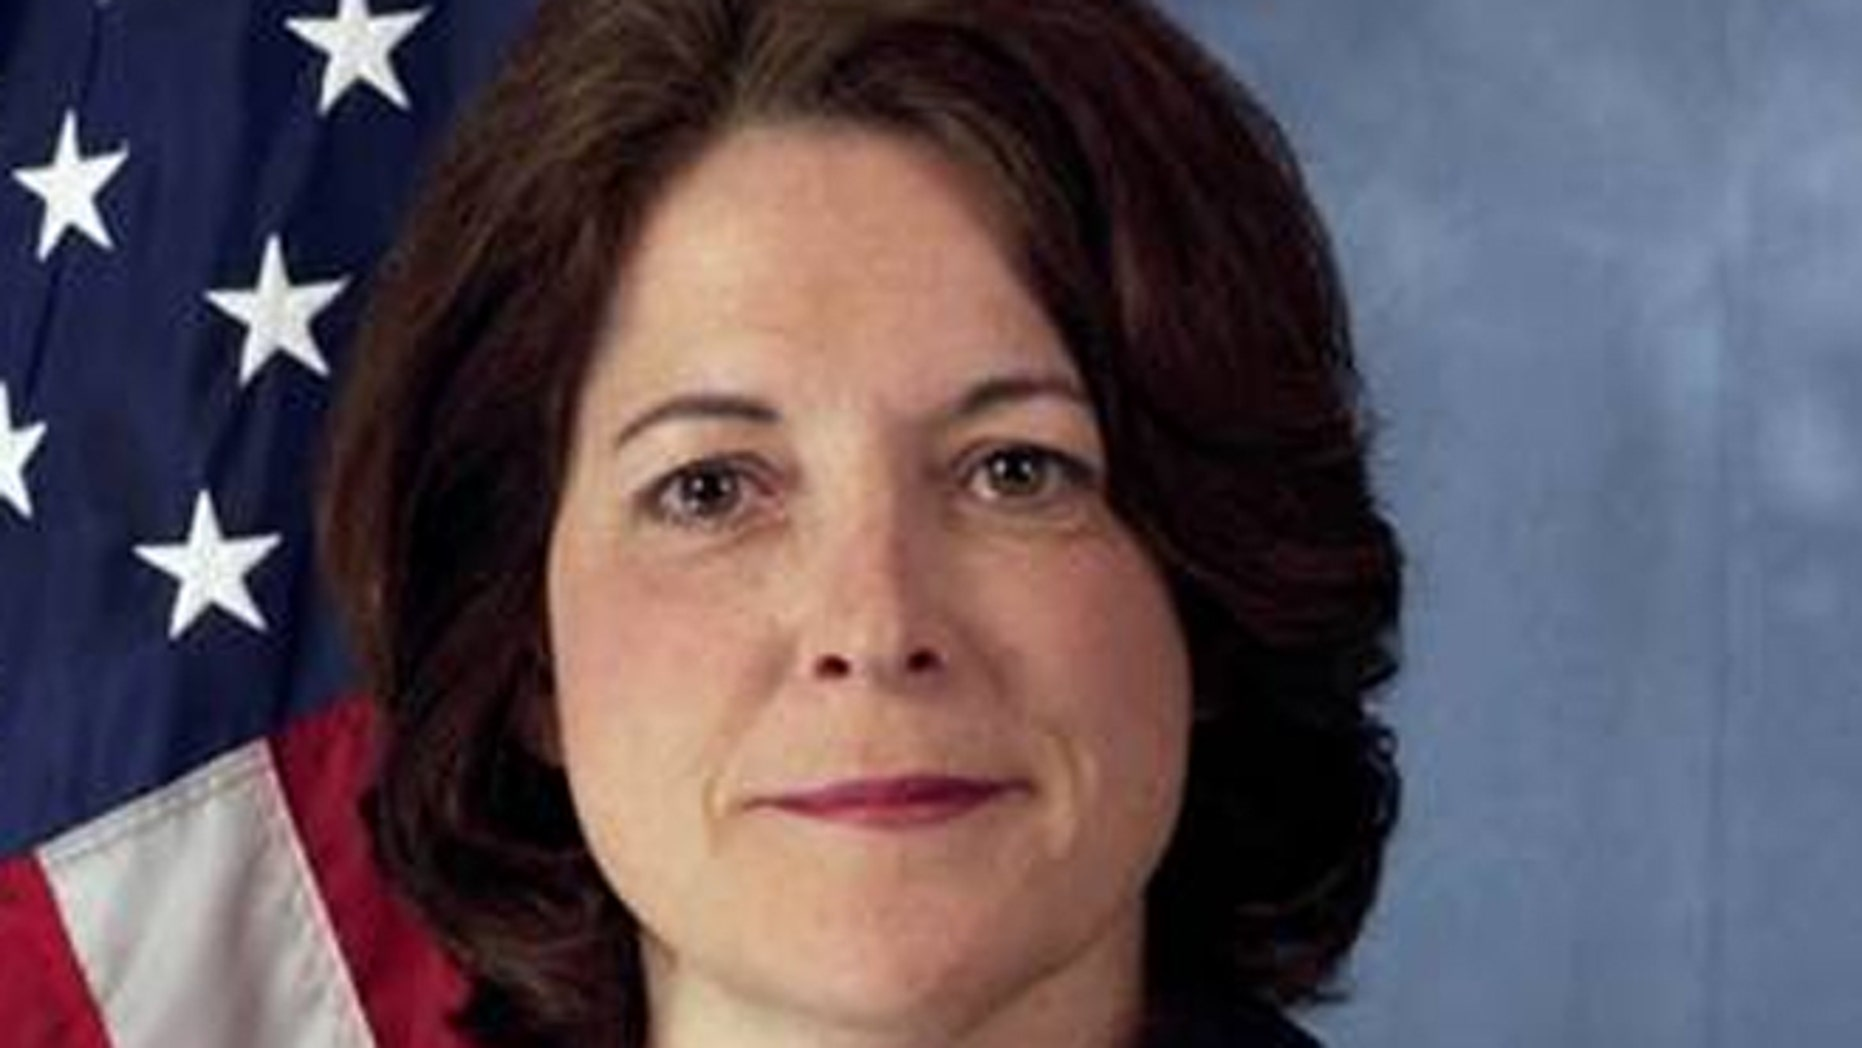 Shown here is Julia Pierson, whom President Obama has appointed to lead the Secret Service.